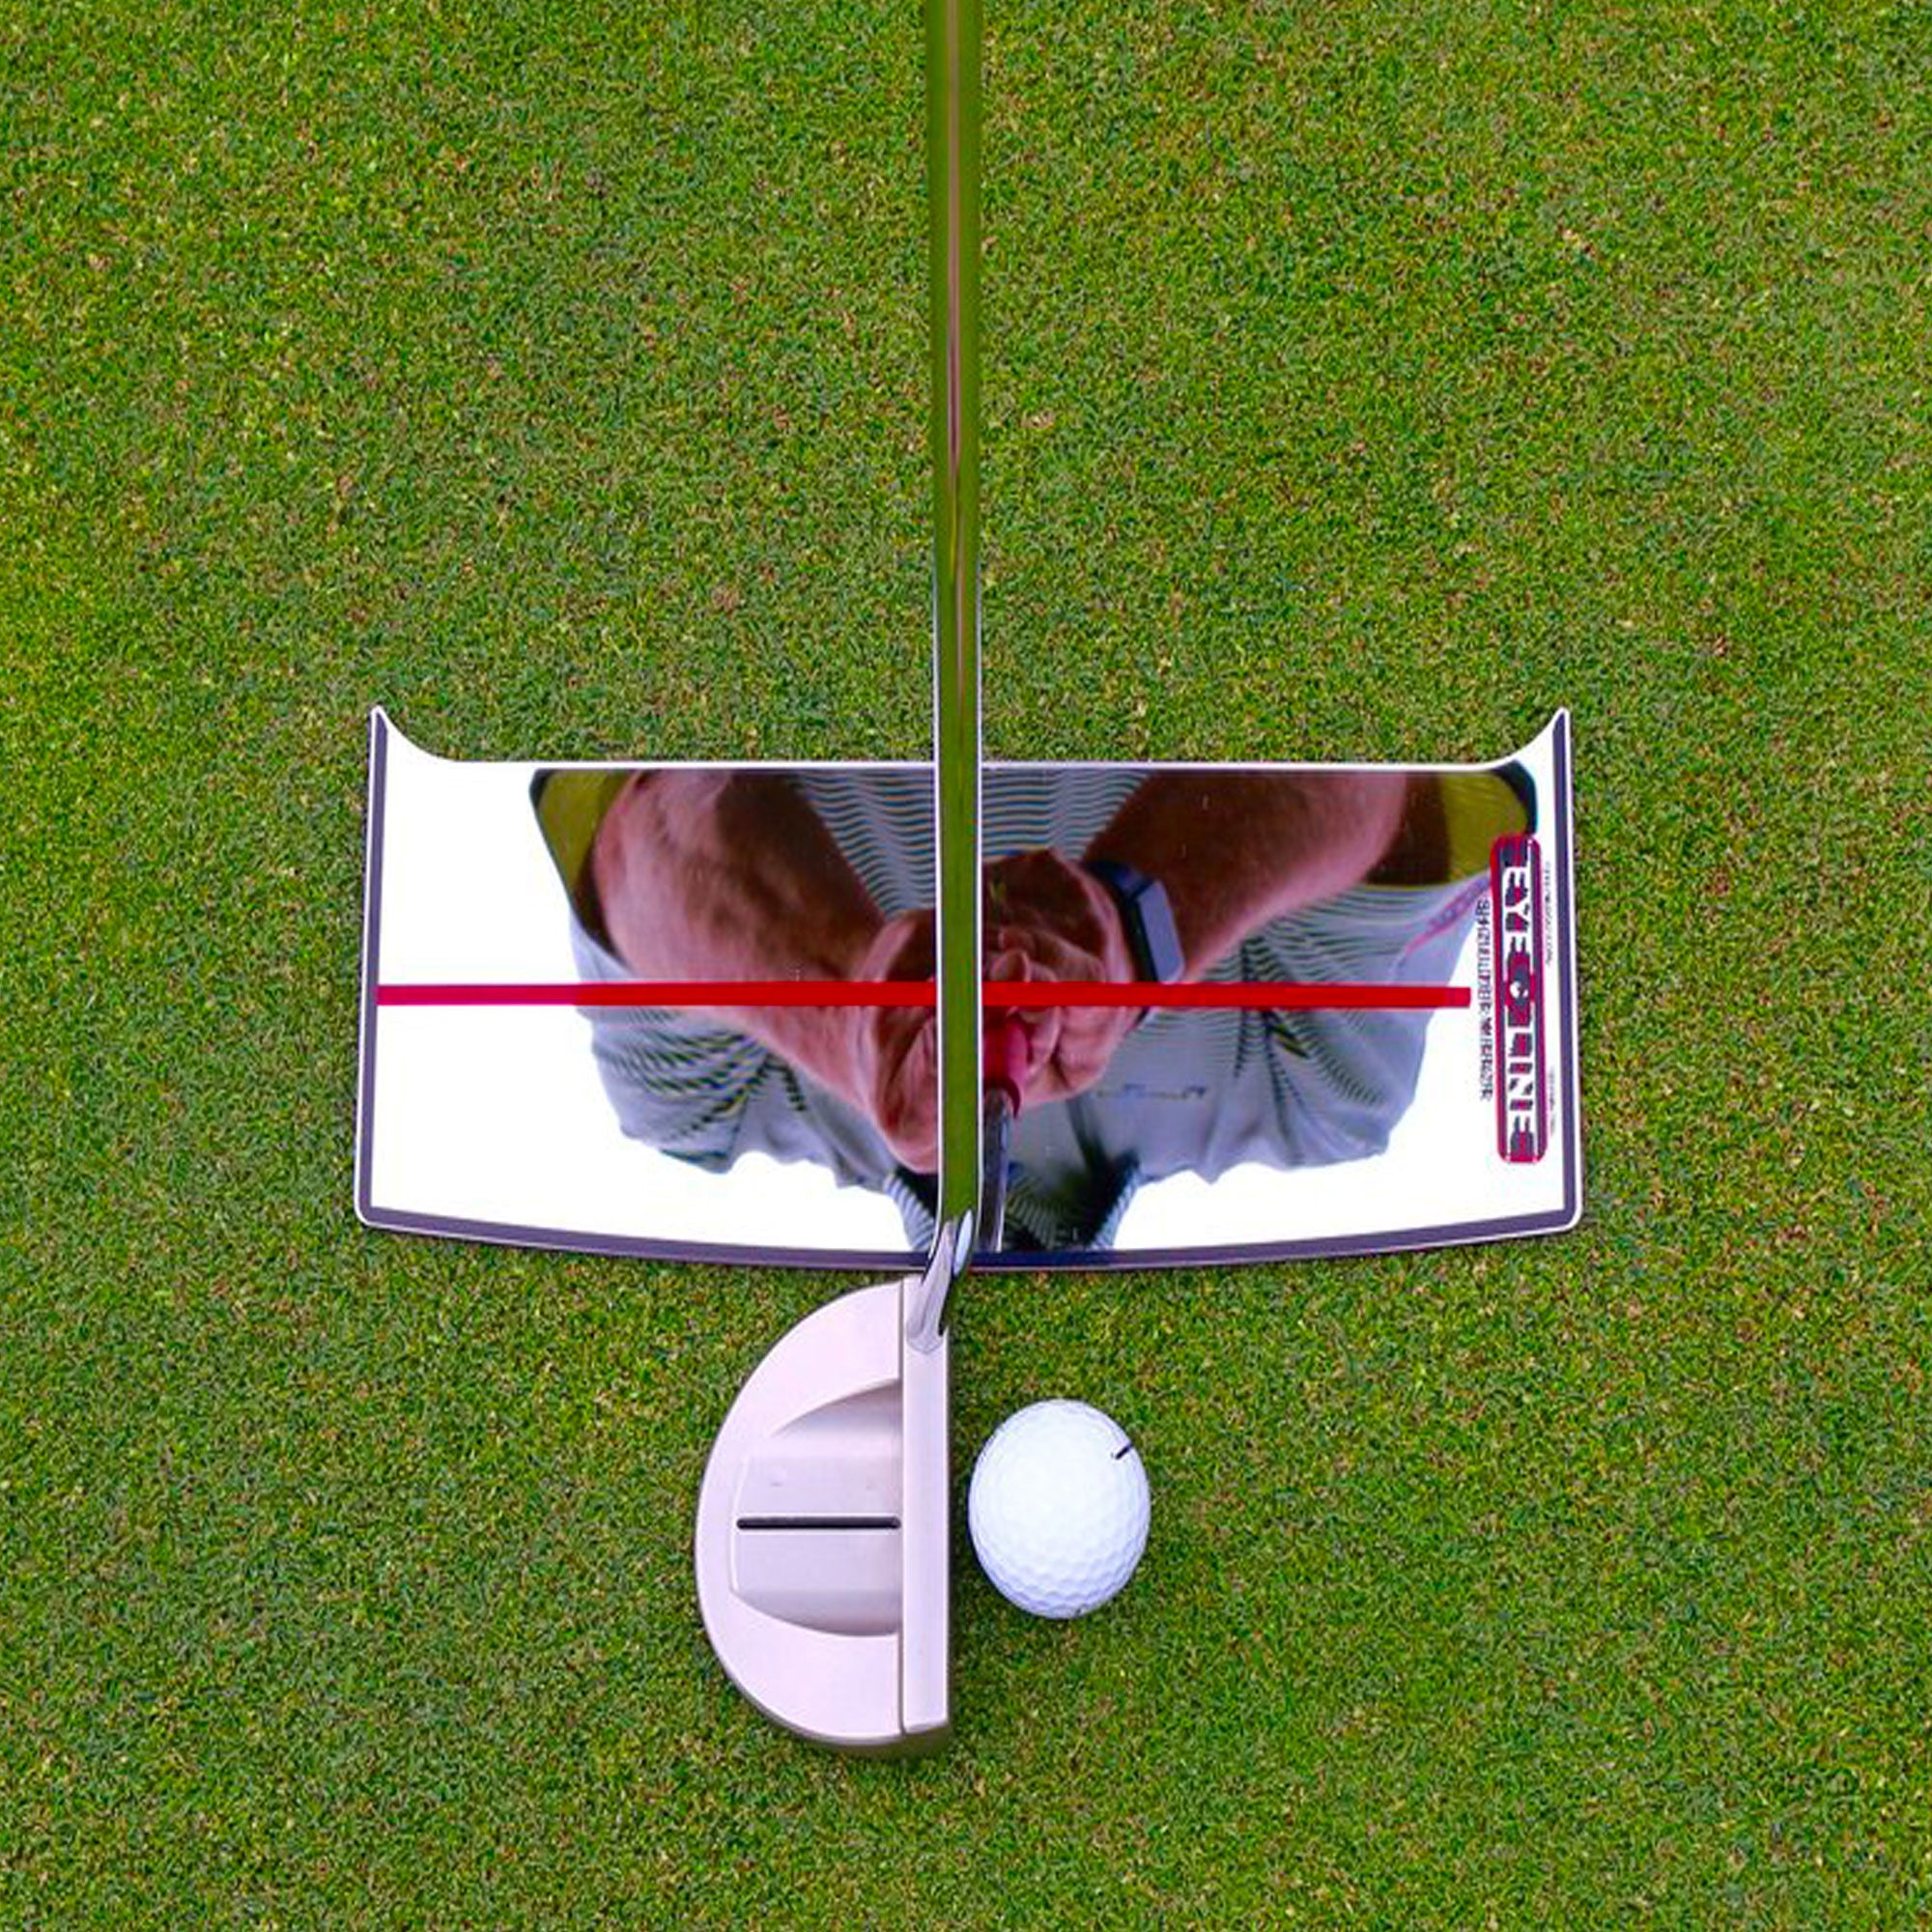 Eyeline Golf - Shoulder Mirror